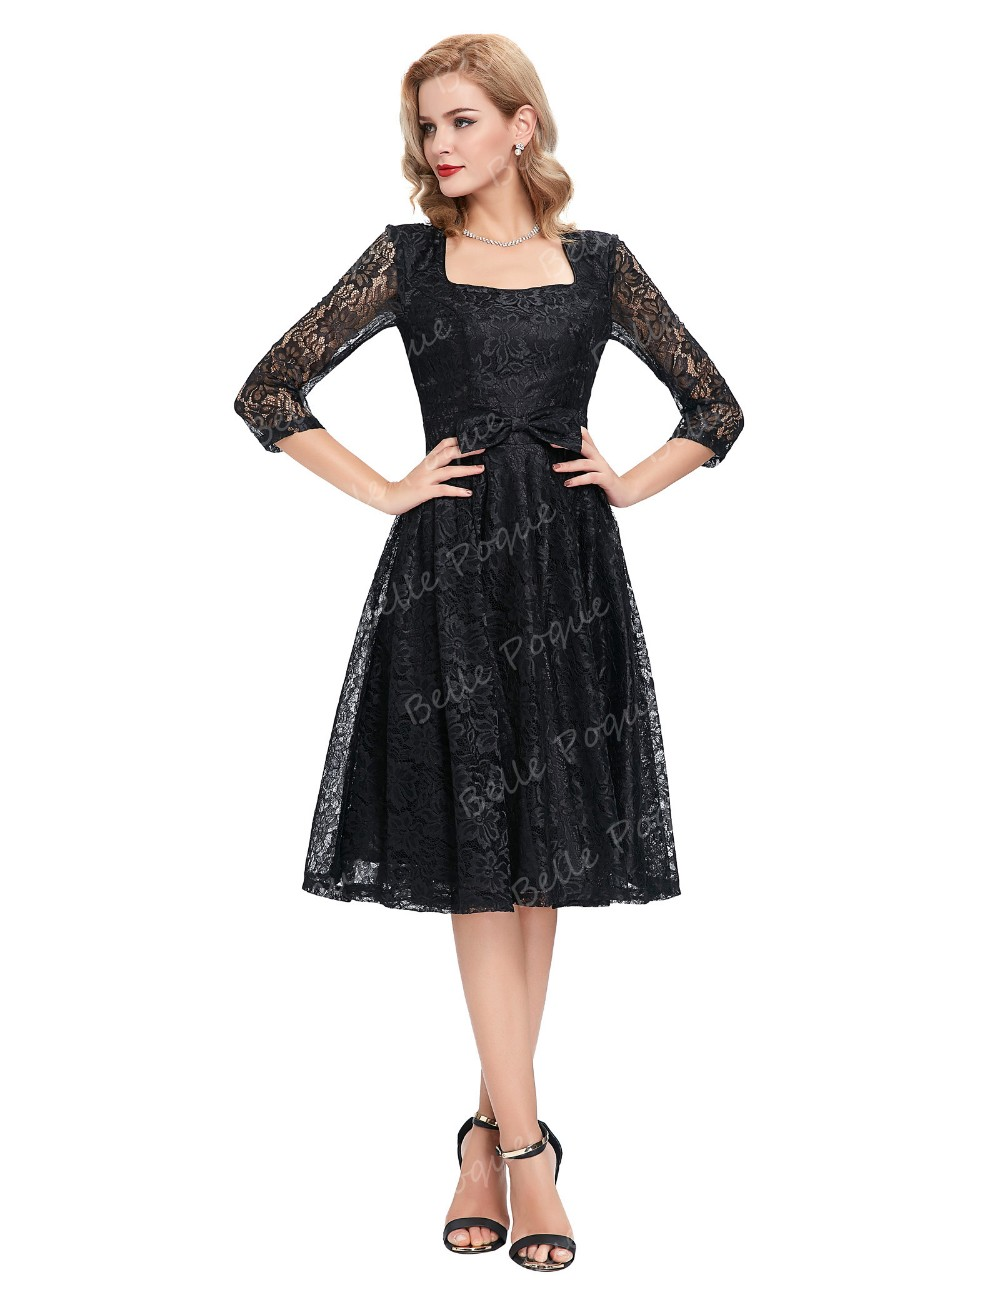 Belle Poque Stock 3/4 Sleeve Square Neck Black Lace 50s Retro Party Vintage Dress BP000048-1